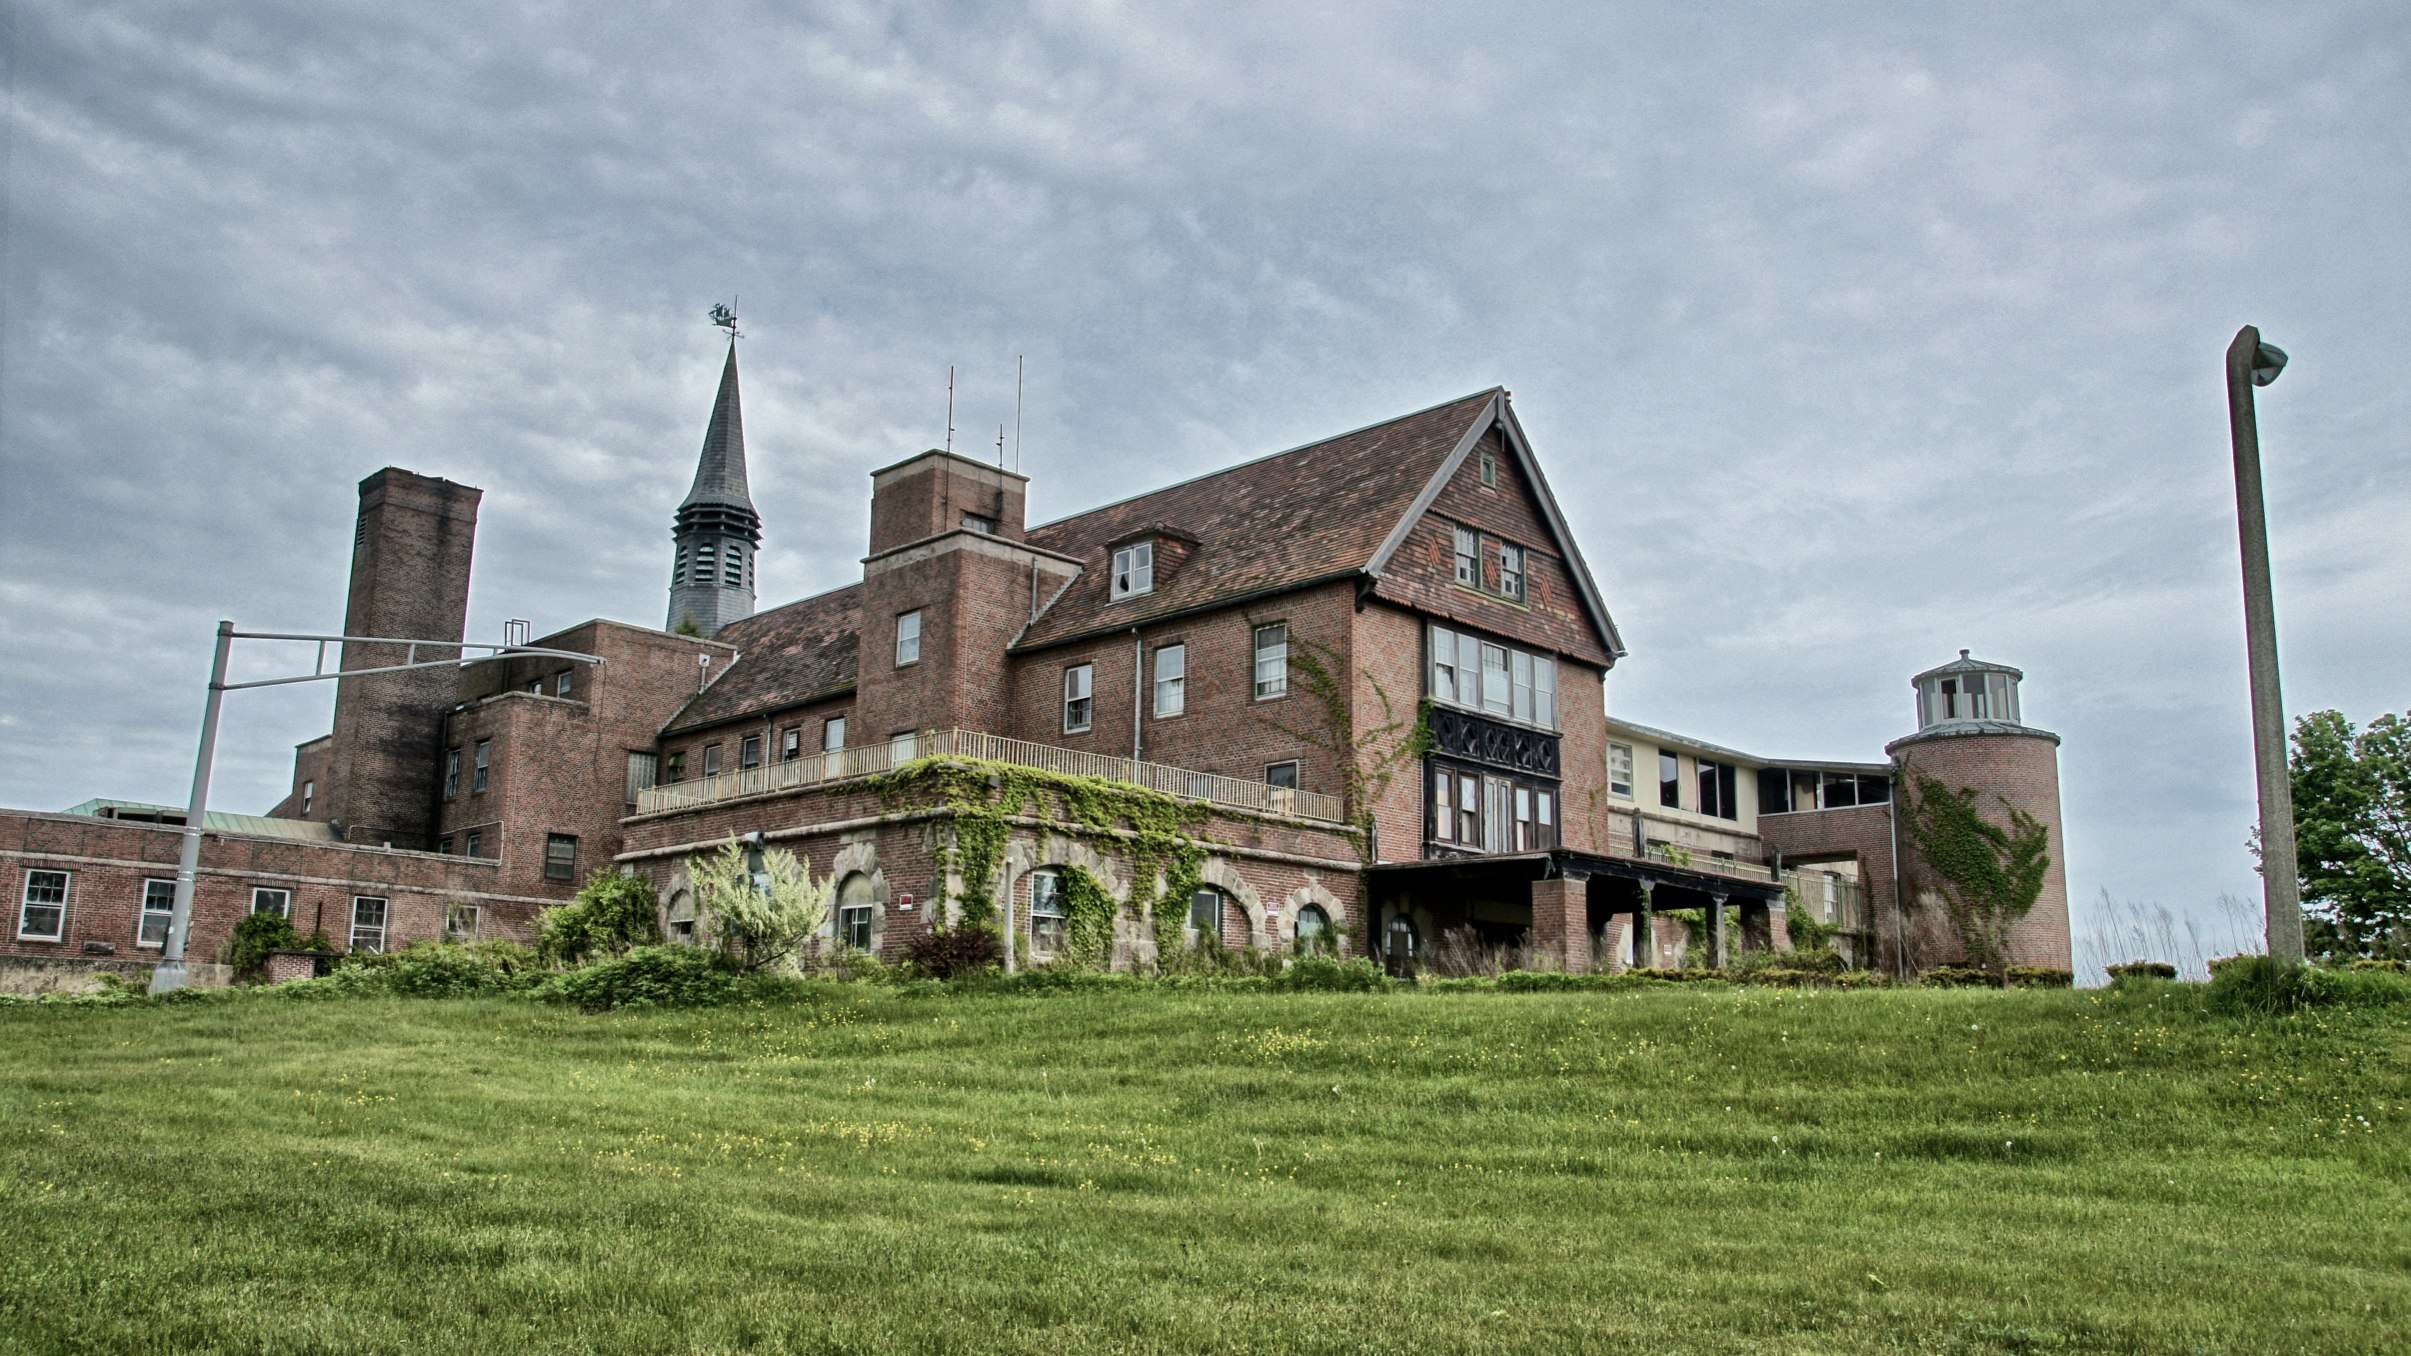 22 Historic Haunted Houses In New England New England Historical Society